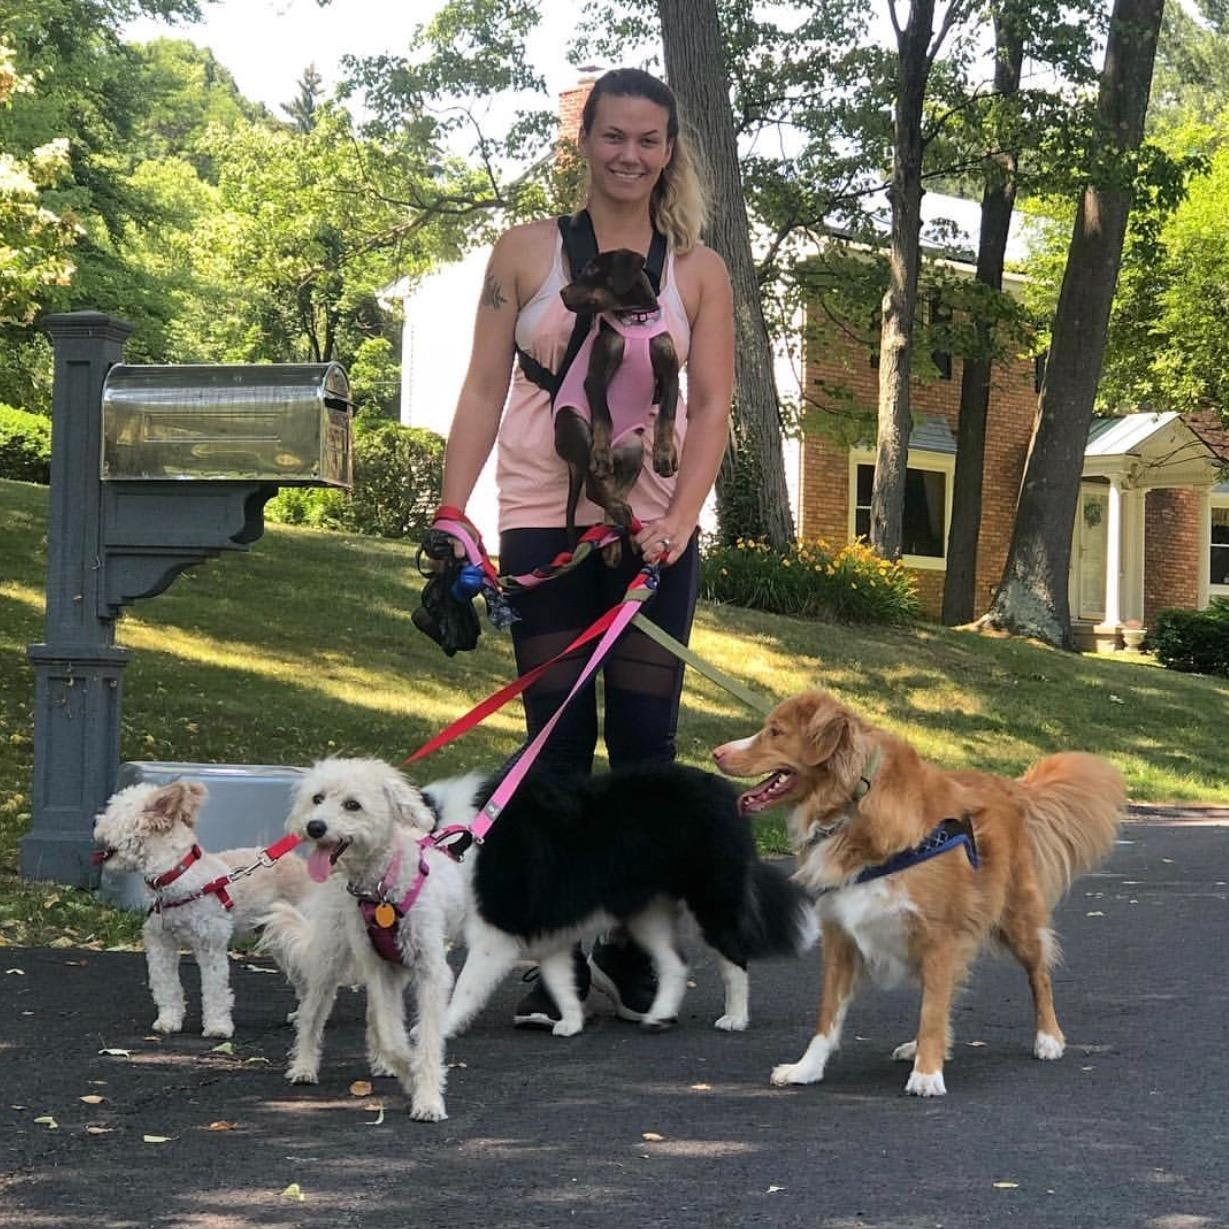 dog walker Tasha